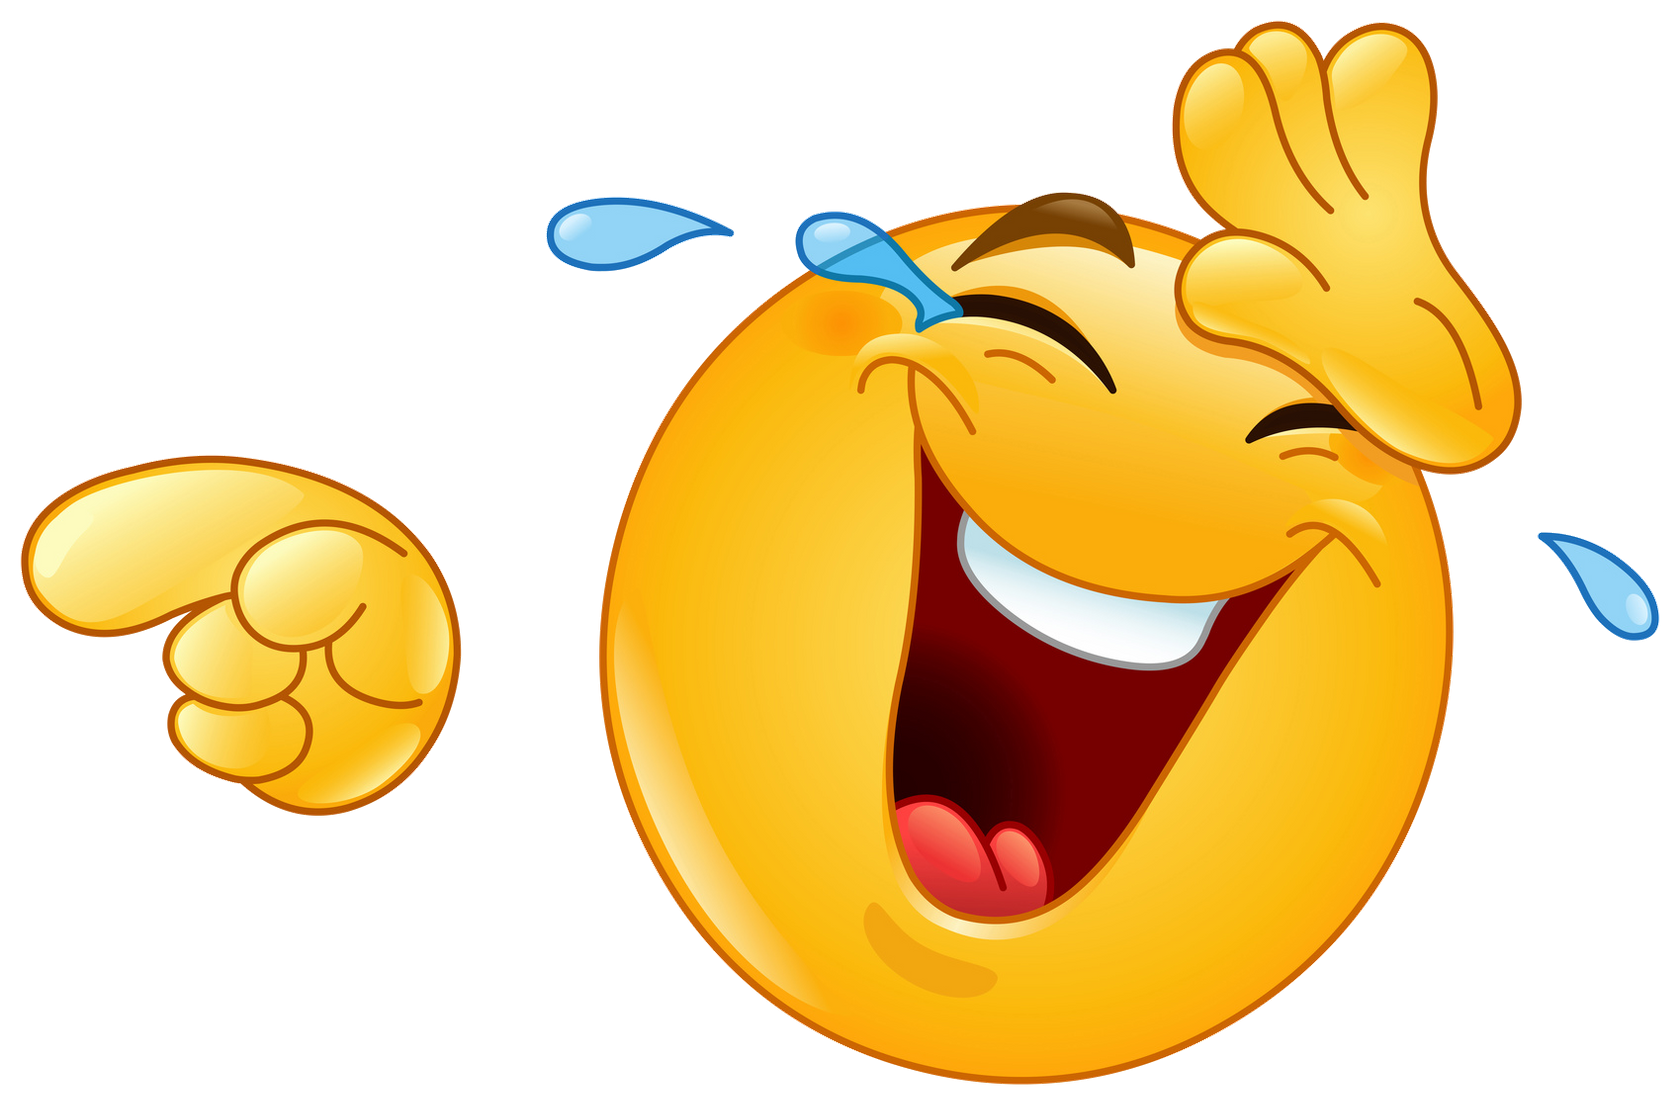 Emoticon Smiley Laughter Laughing Lol Png Image High Quality Funny Emoticons Emoticons Emojis Laughing Emoji